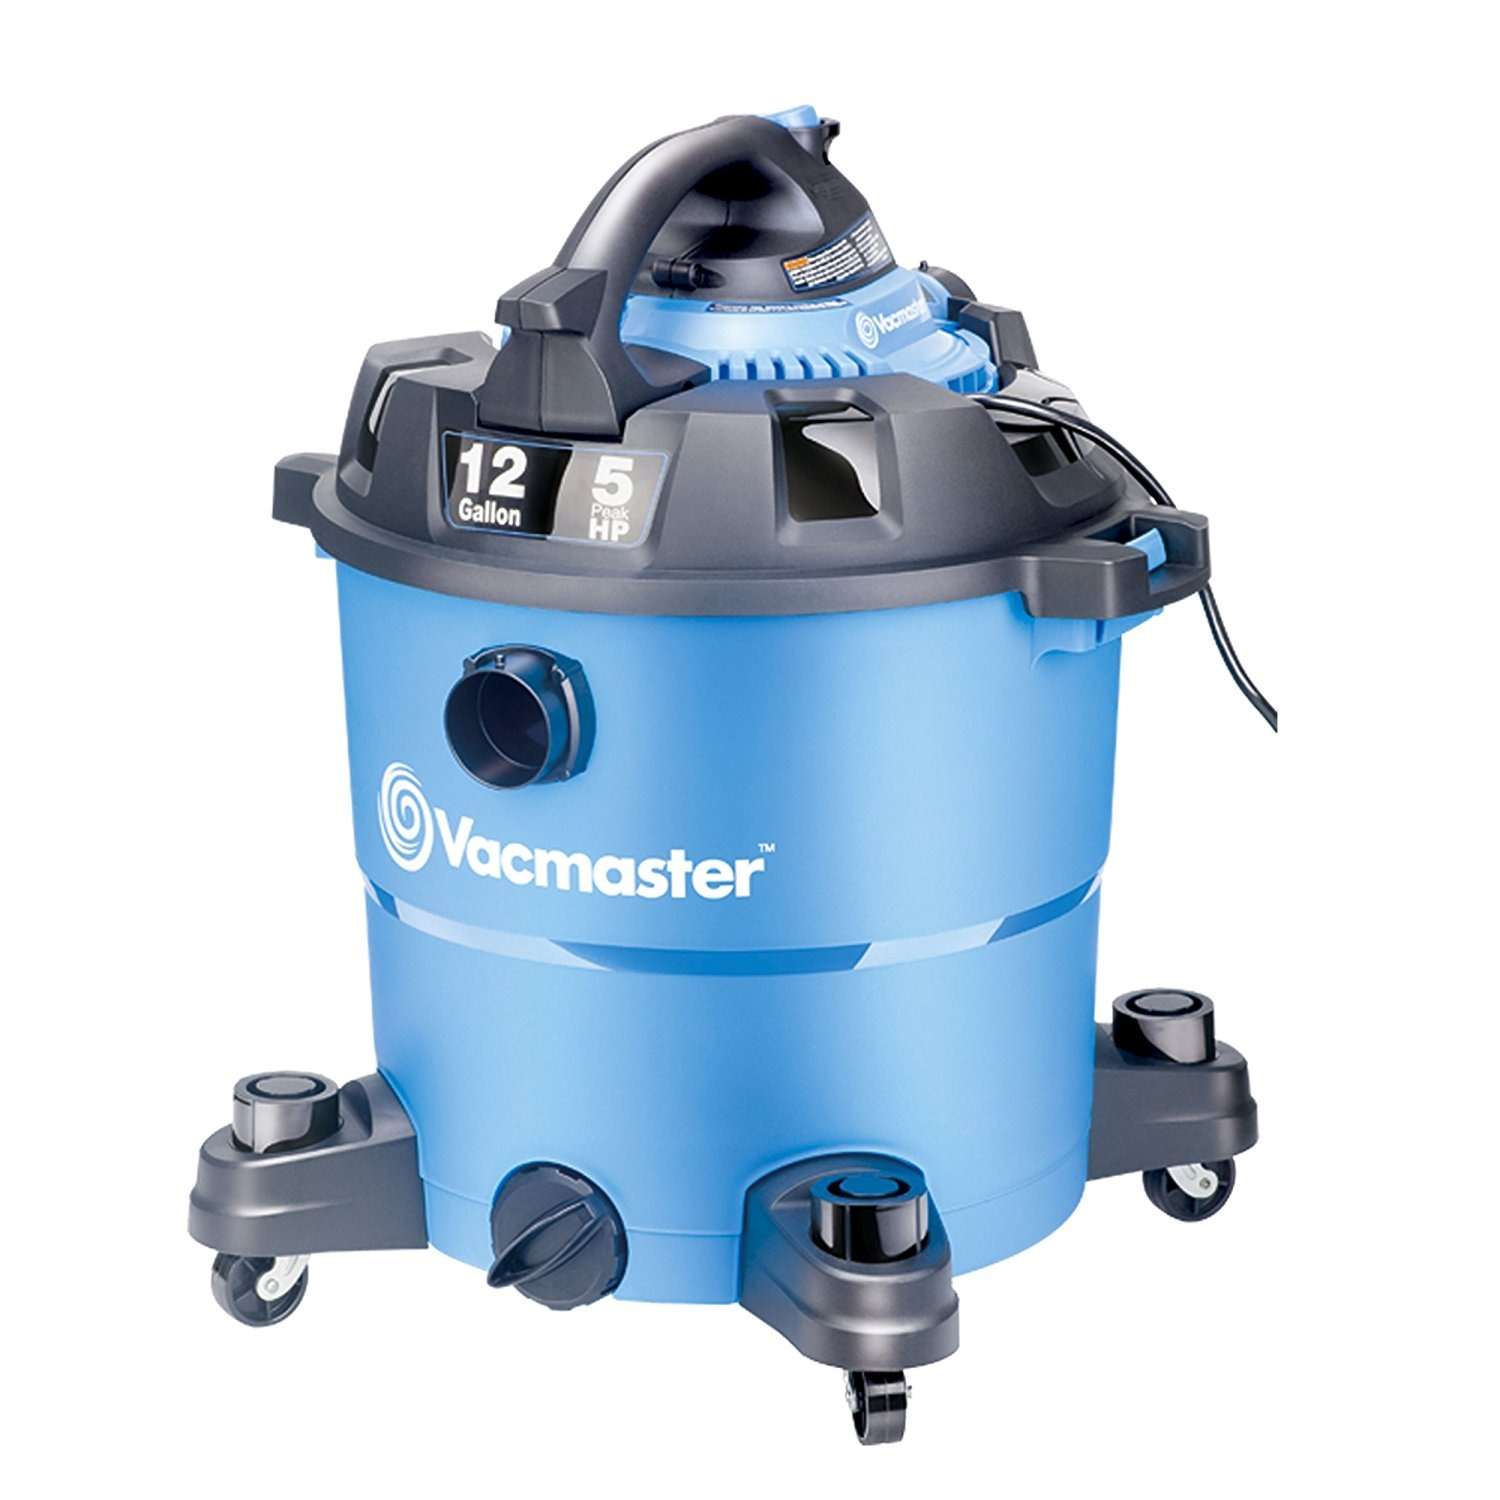 Vacmaster 12 Gallon Car Vacuum